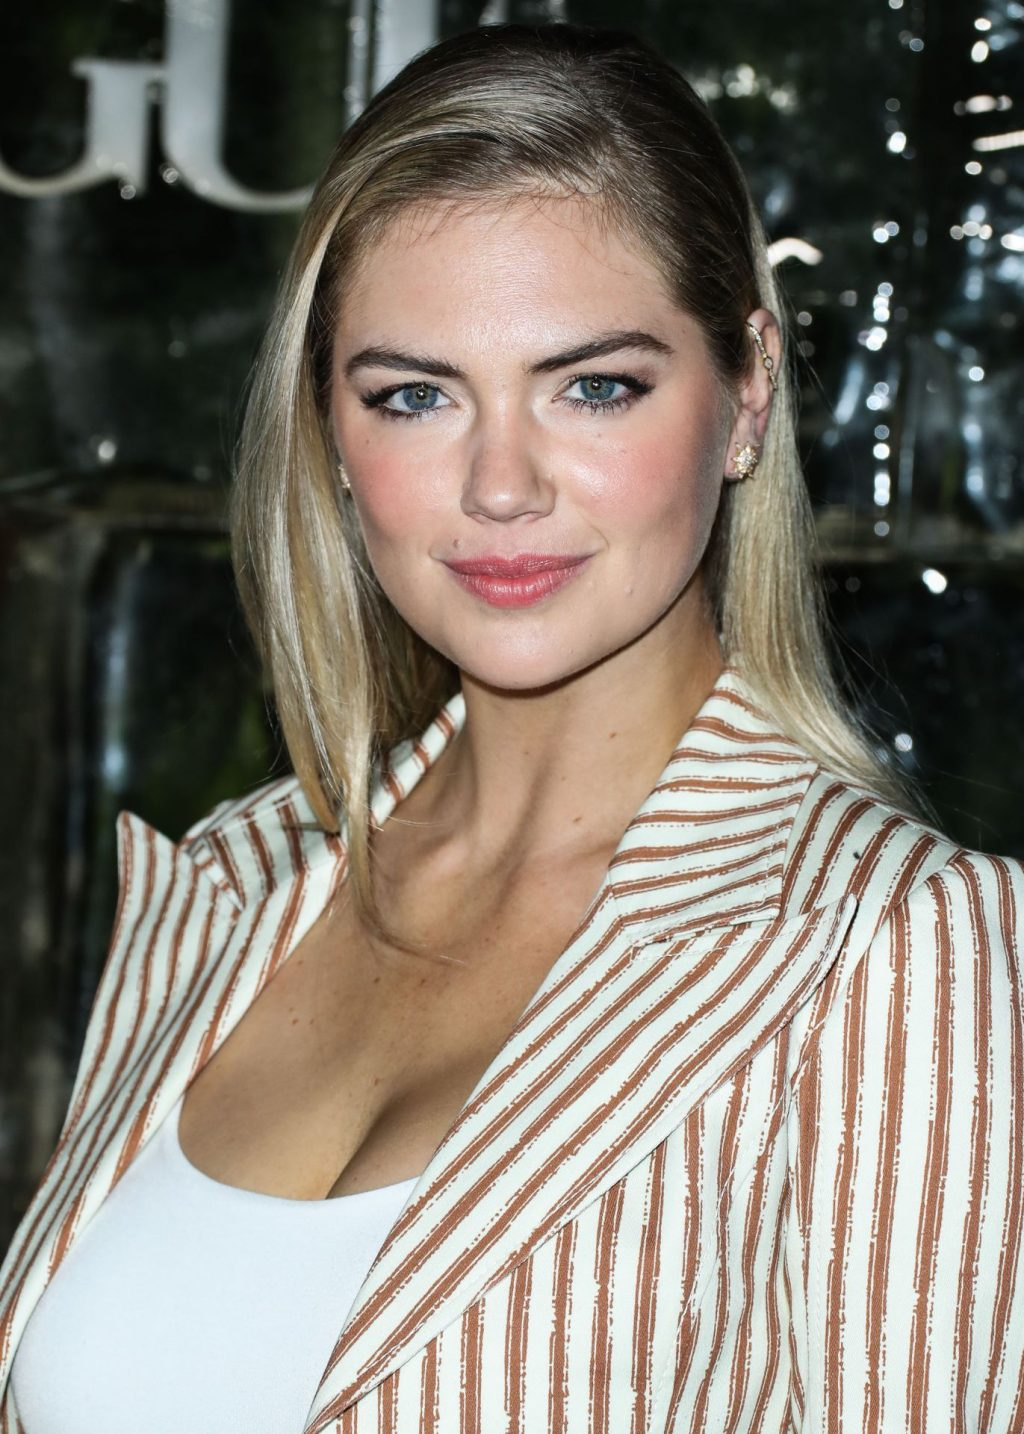 Kate Upton Sexy The Fappening Blog 79 1024x1434 - Kate Upton Attends Canada Goose And Vogue Cocktails & Conversations (104 Photos)